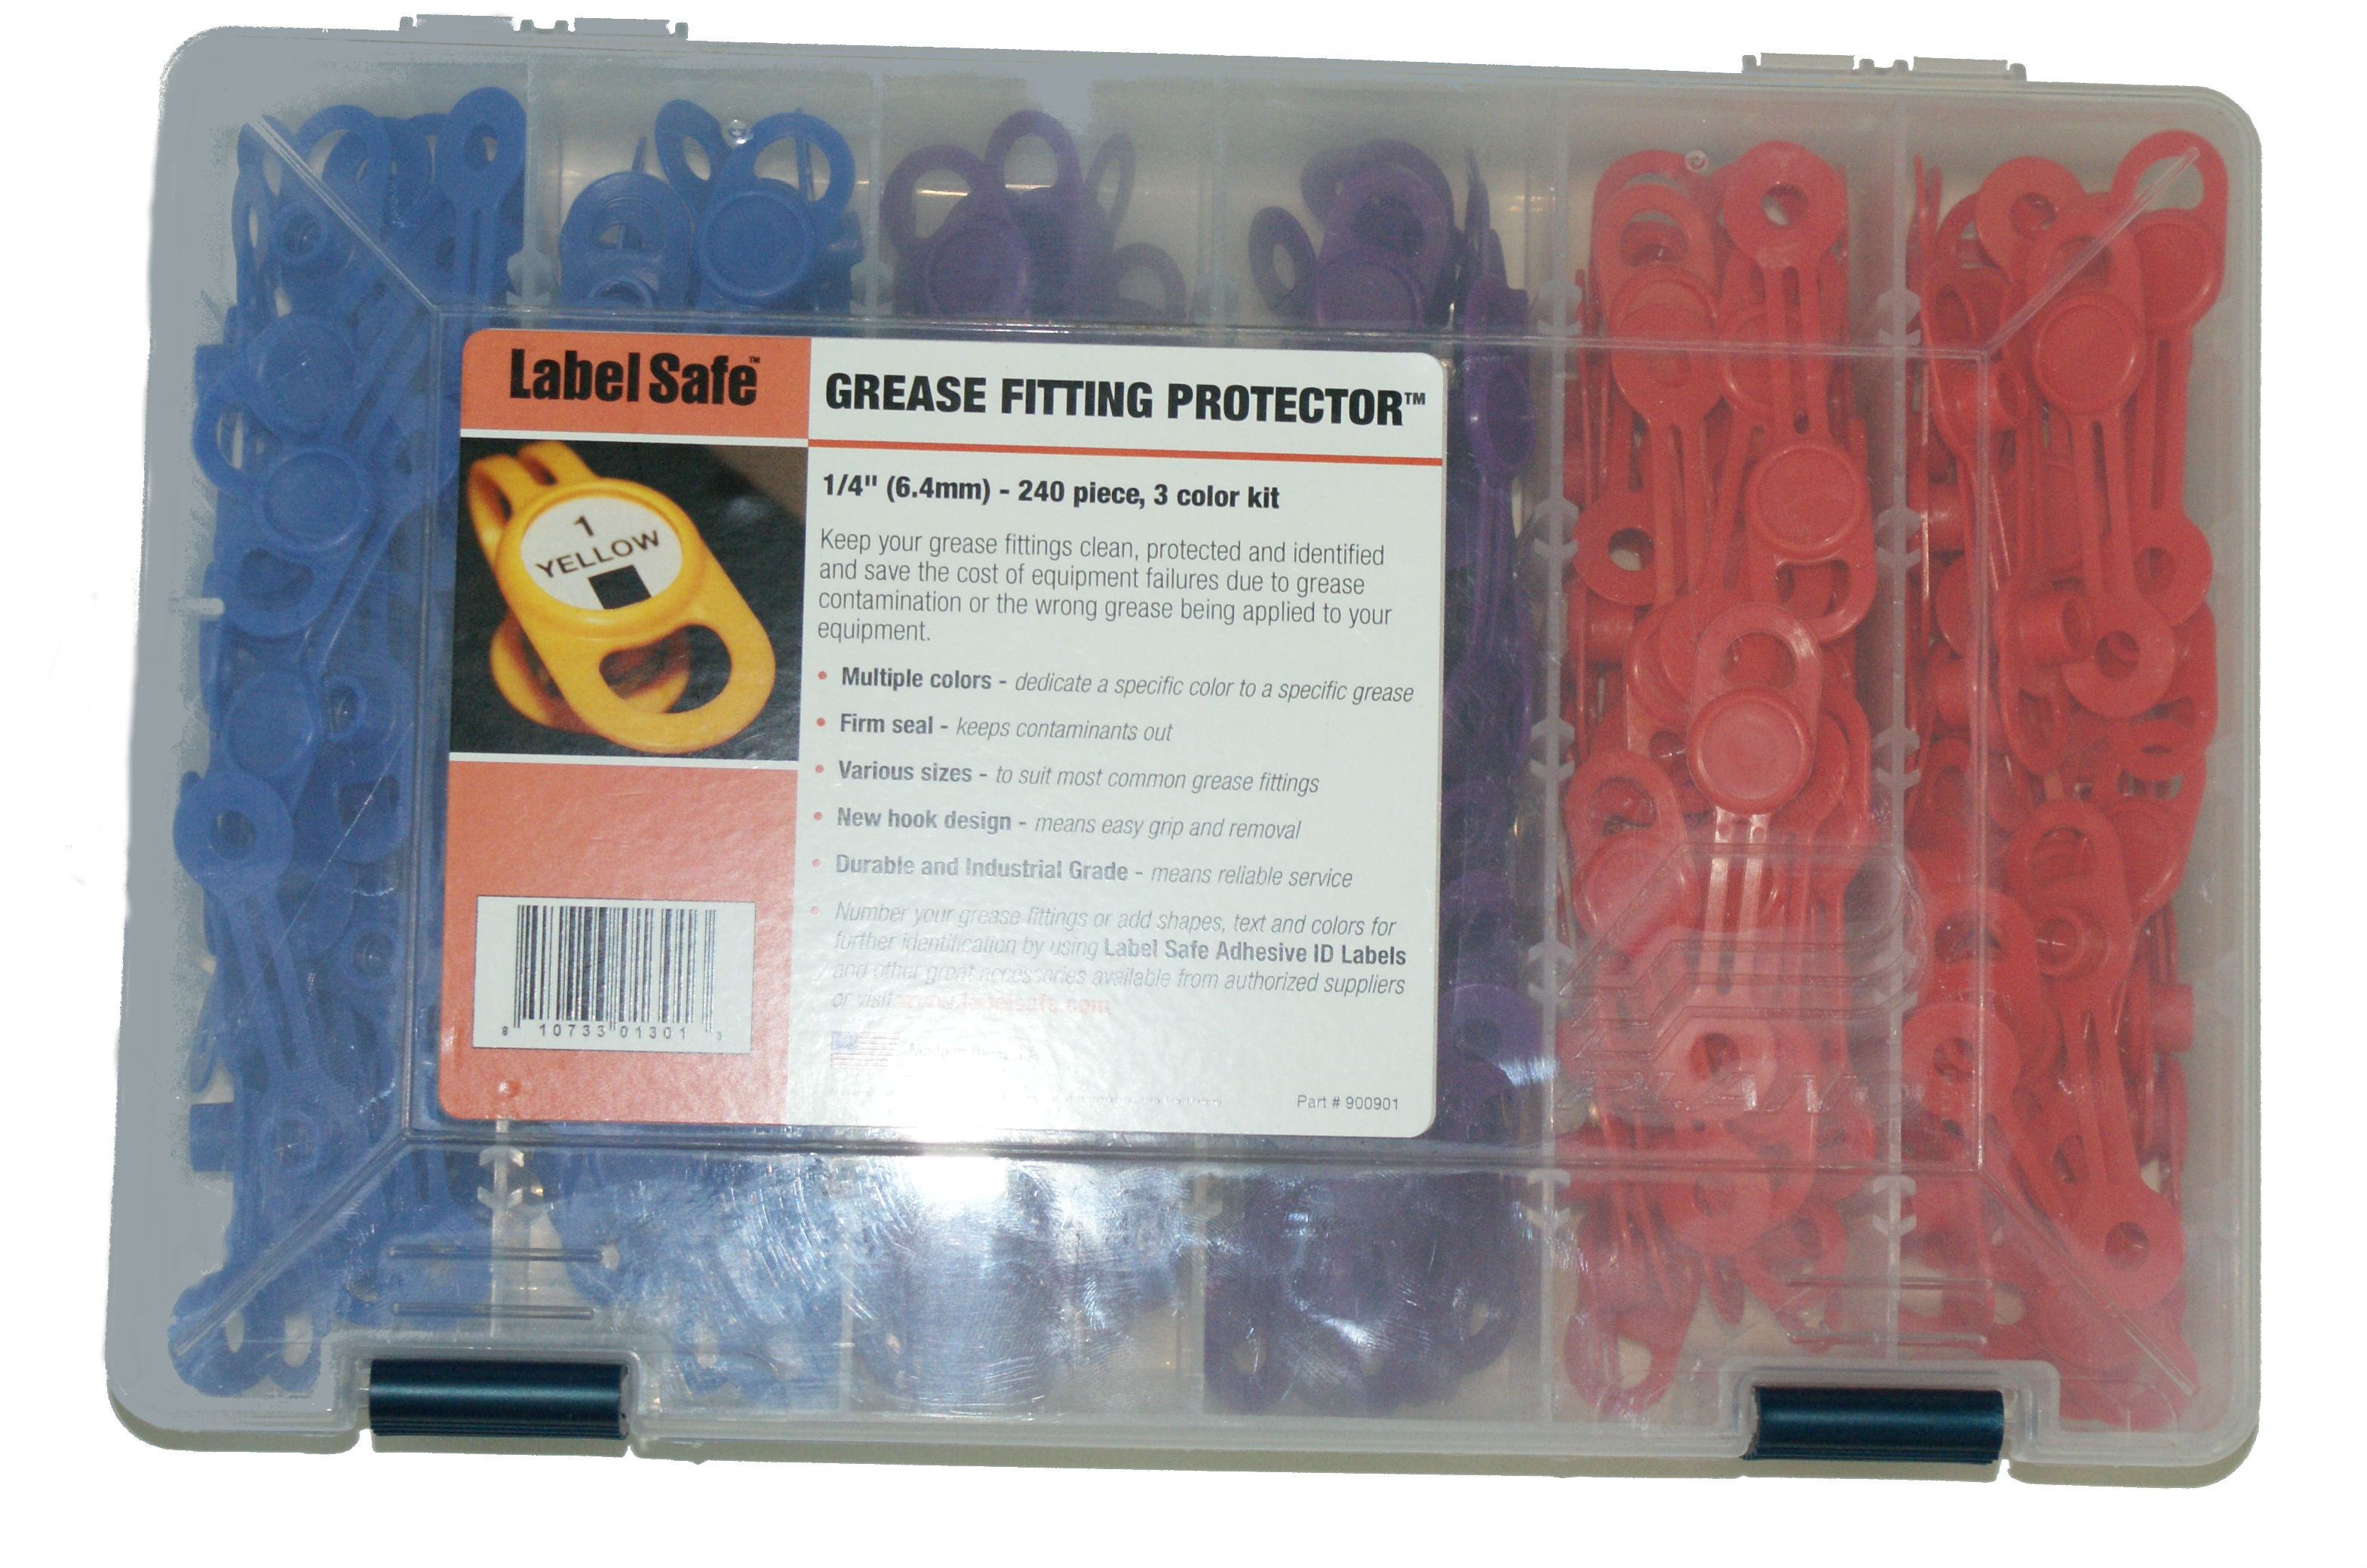 GREASE FITTING PROTECTOR - (6 4mm) 3 COLOR - 60PC